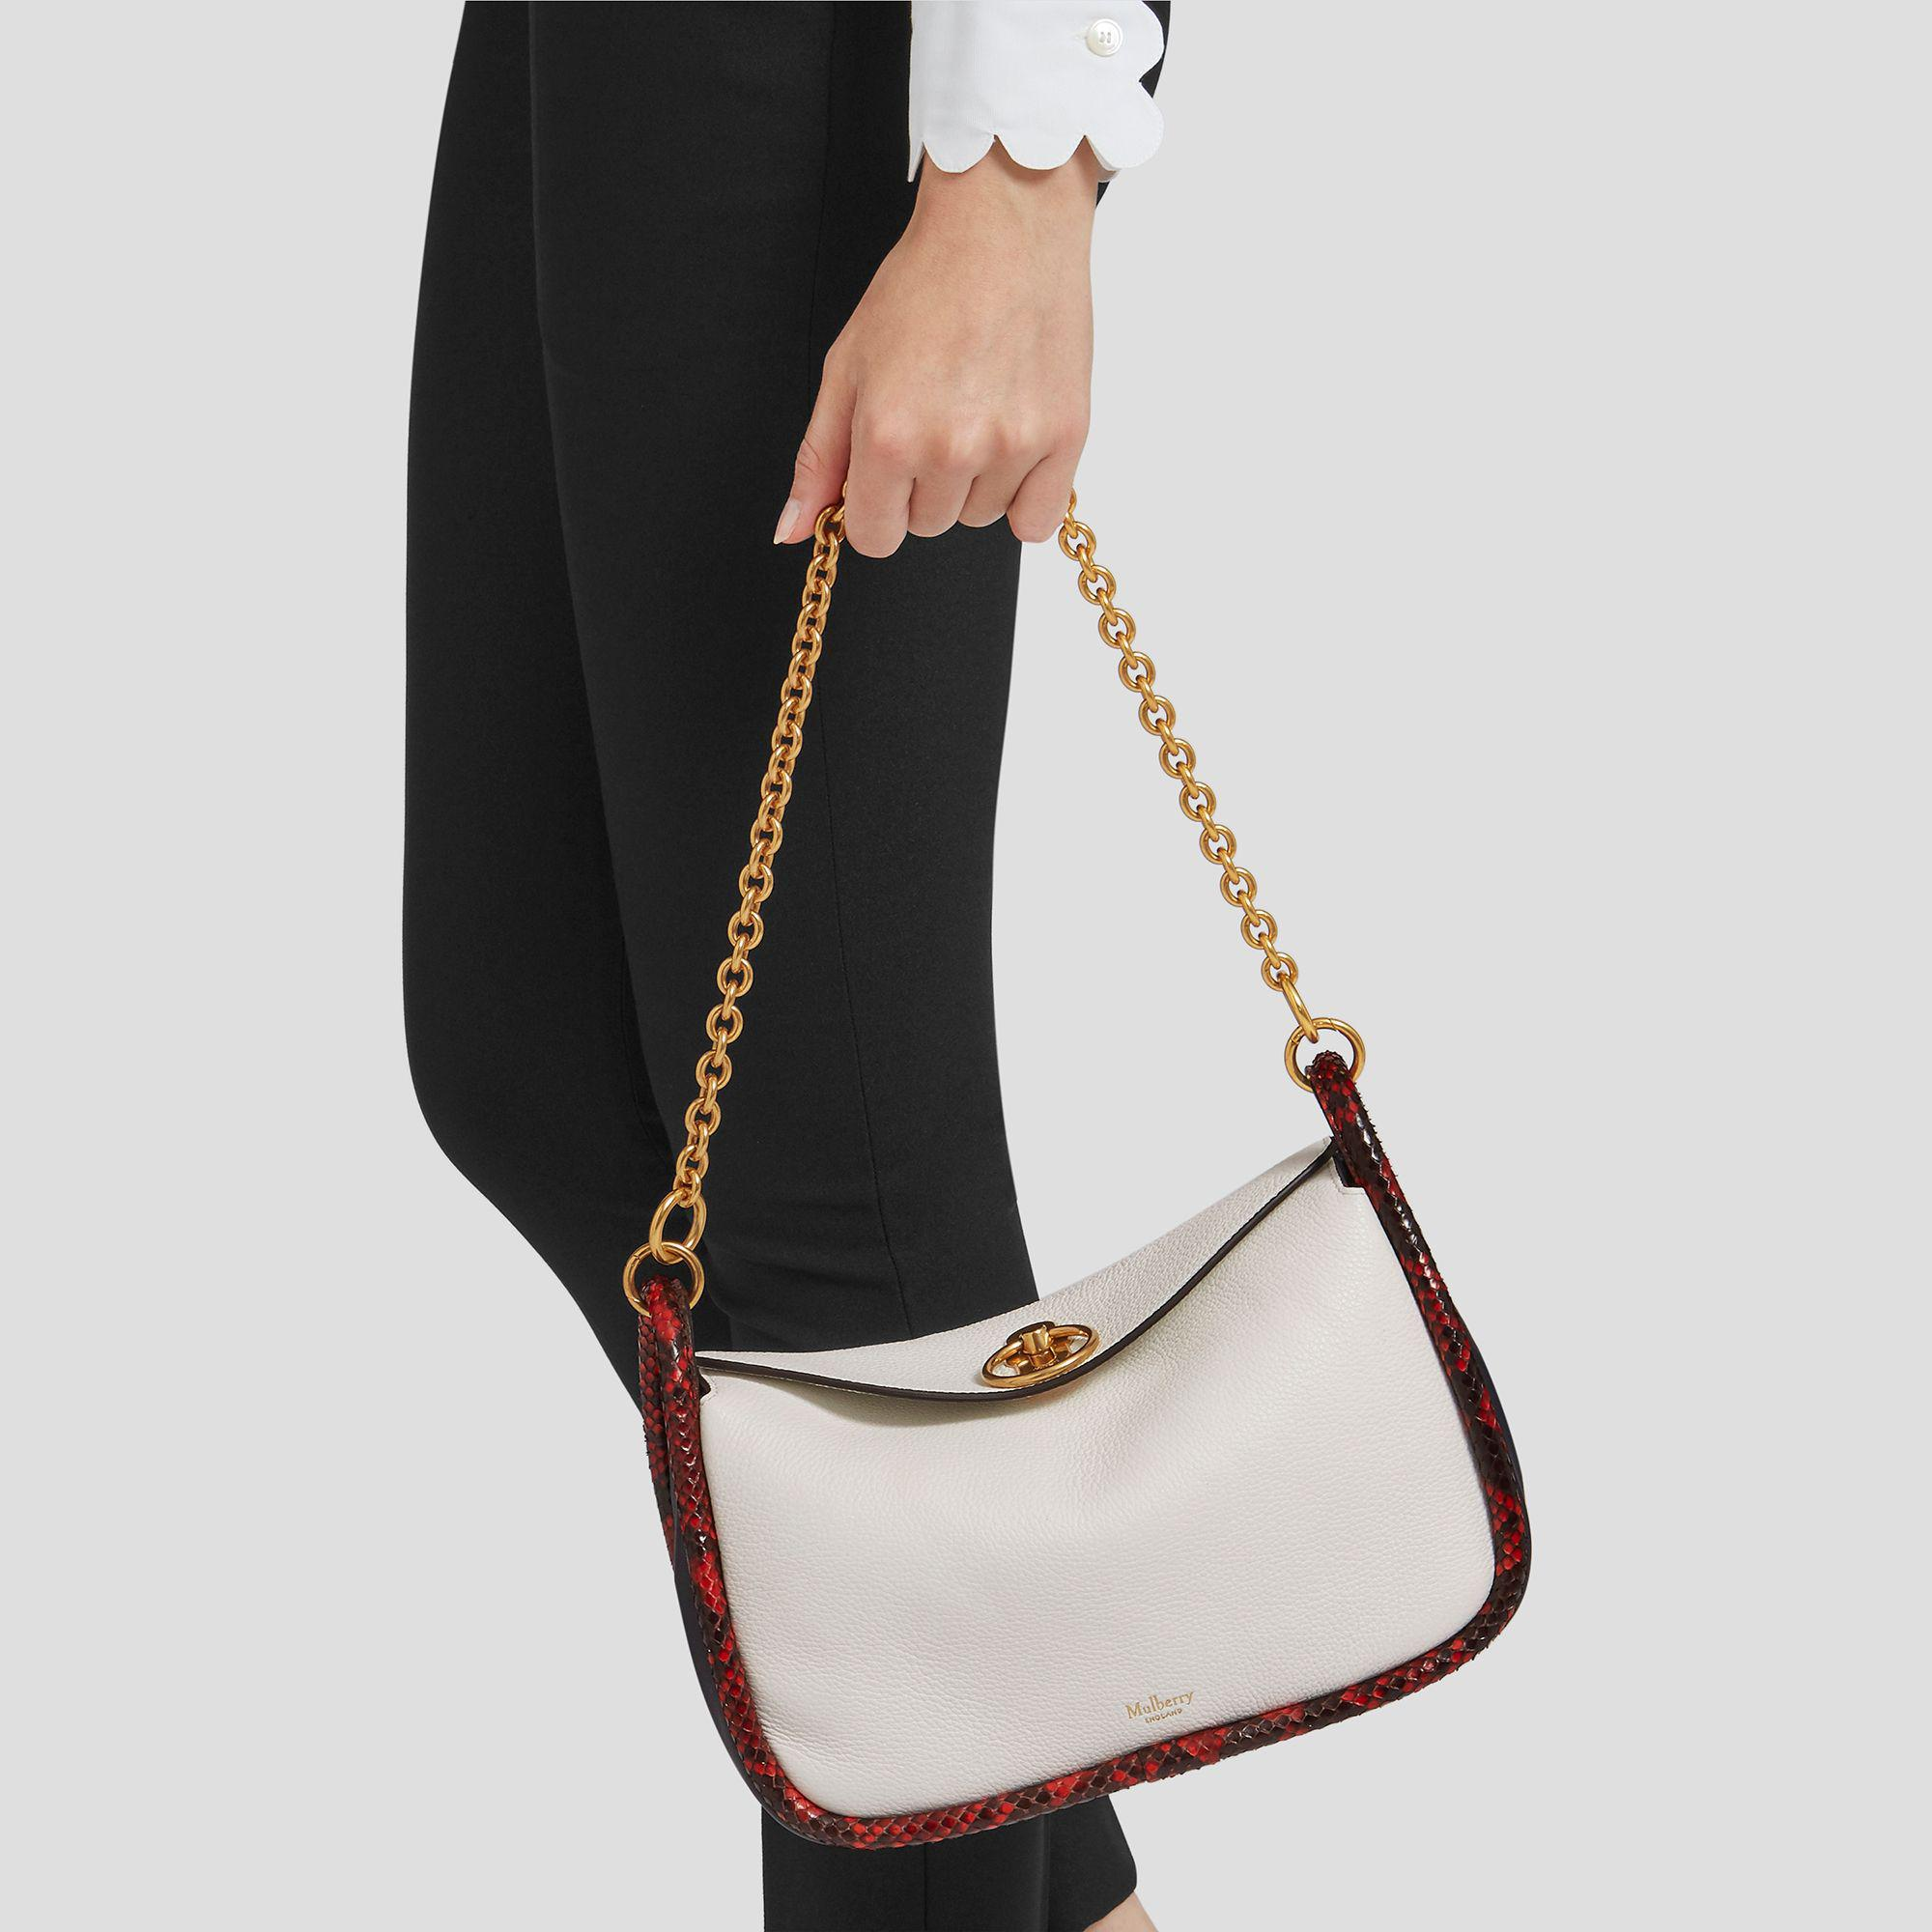 Mulberry Small Leighton in White - Lyst 682f4321b0ee4